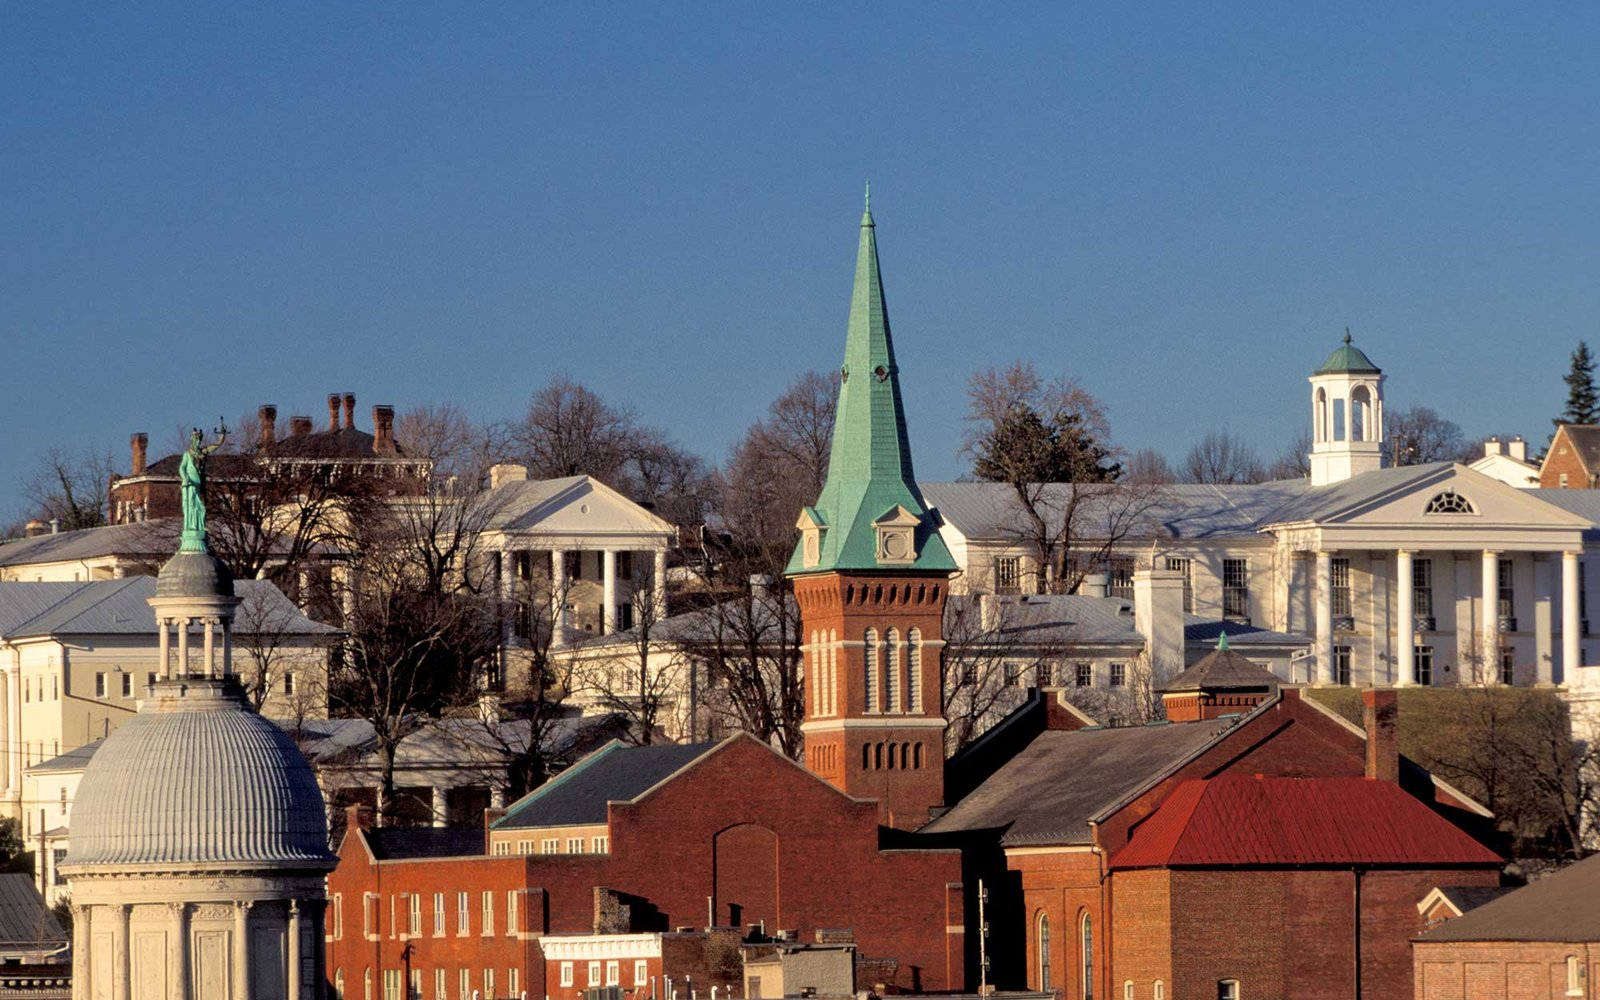 Virginia, Staunton. Skyline With Church Steeple And Government Buildings.